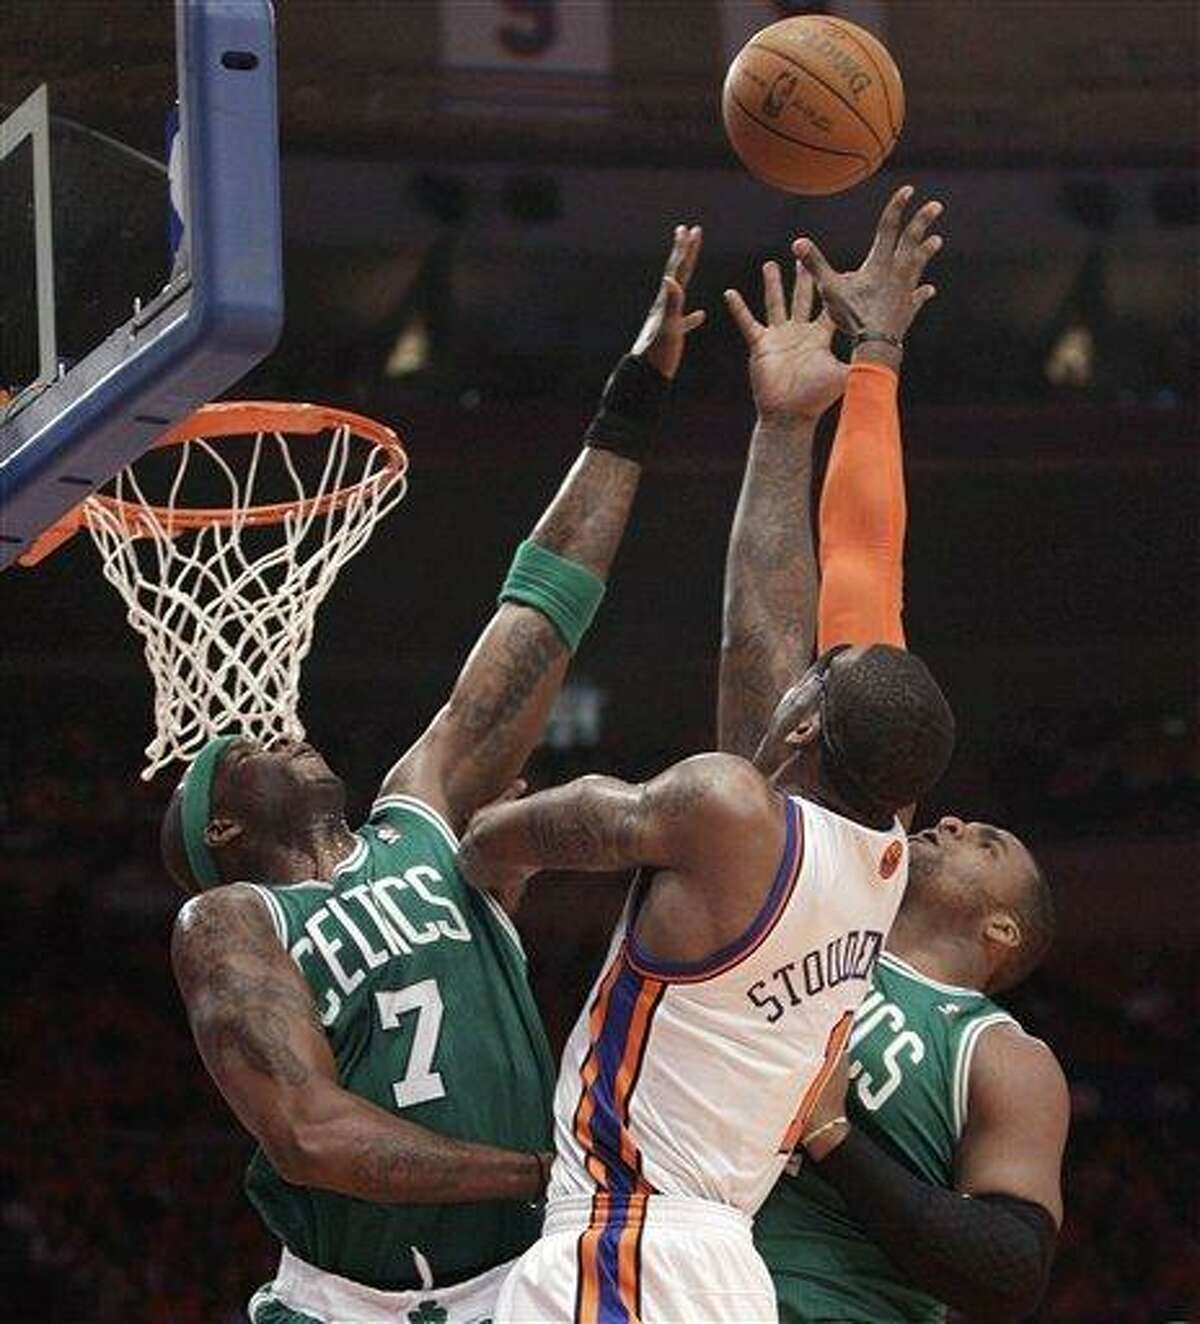 Boston Celtics center Jermaine O'Neal (7) and forward Glen Davis, right, go up for a rebound with New York Knicks forward Amare Stoudemire (1) in the first half of Game 4 of a first-round NBA basketball playoff series at Madison Square Garden in New York, Sunday, April 24, 2011. (AP Photo/Kathy Willens)